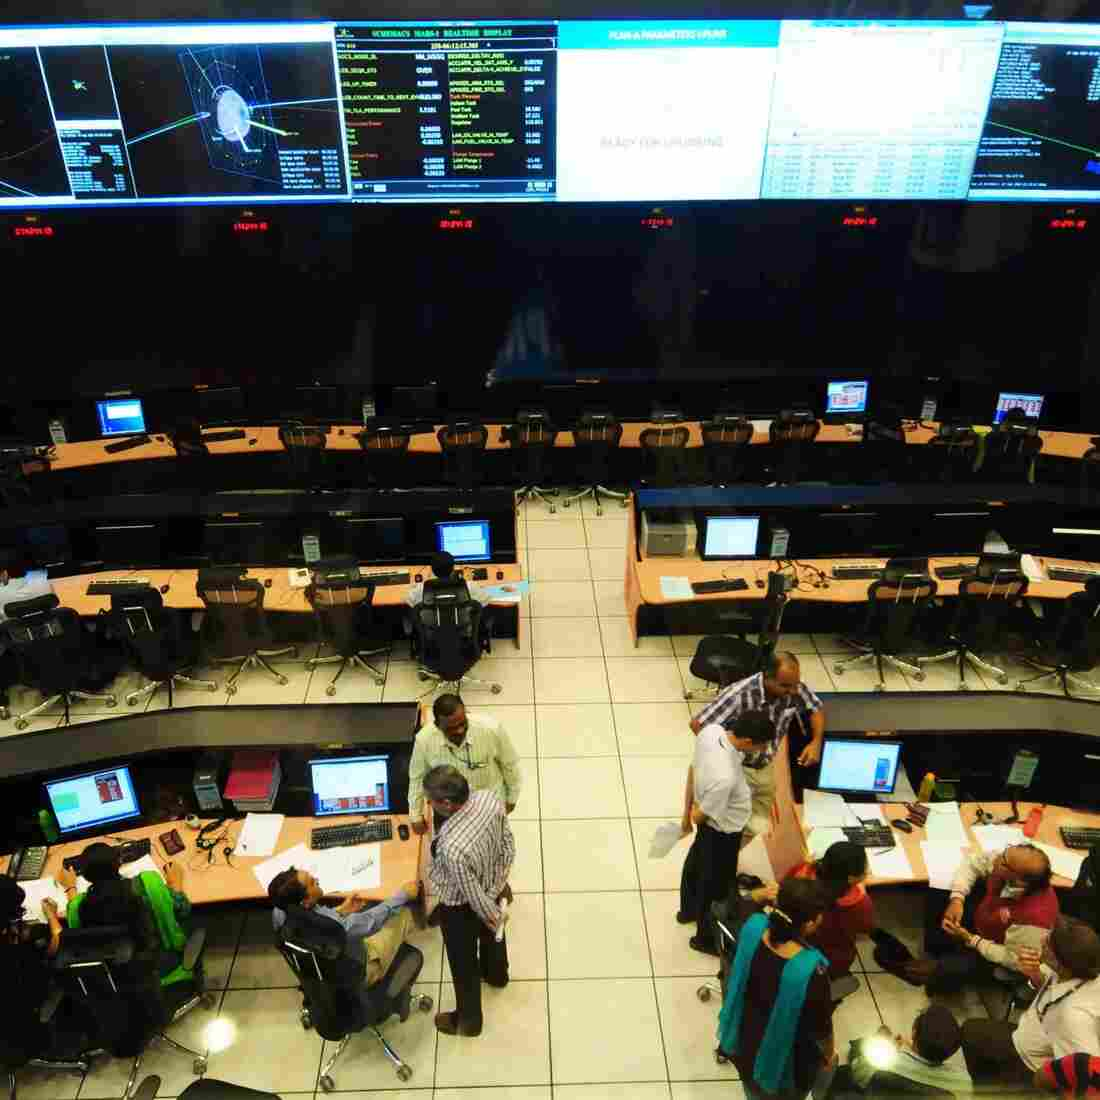 Scientists and engineers at the Indian Space Research Organization (ISRO) monitor the Mars Orbiter Mission (MOM) in Bangalore, India on Sept. 15. MOM is expected to enter into Mars orbit on Wednesday.